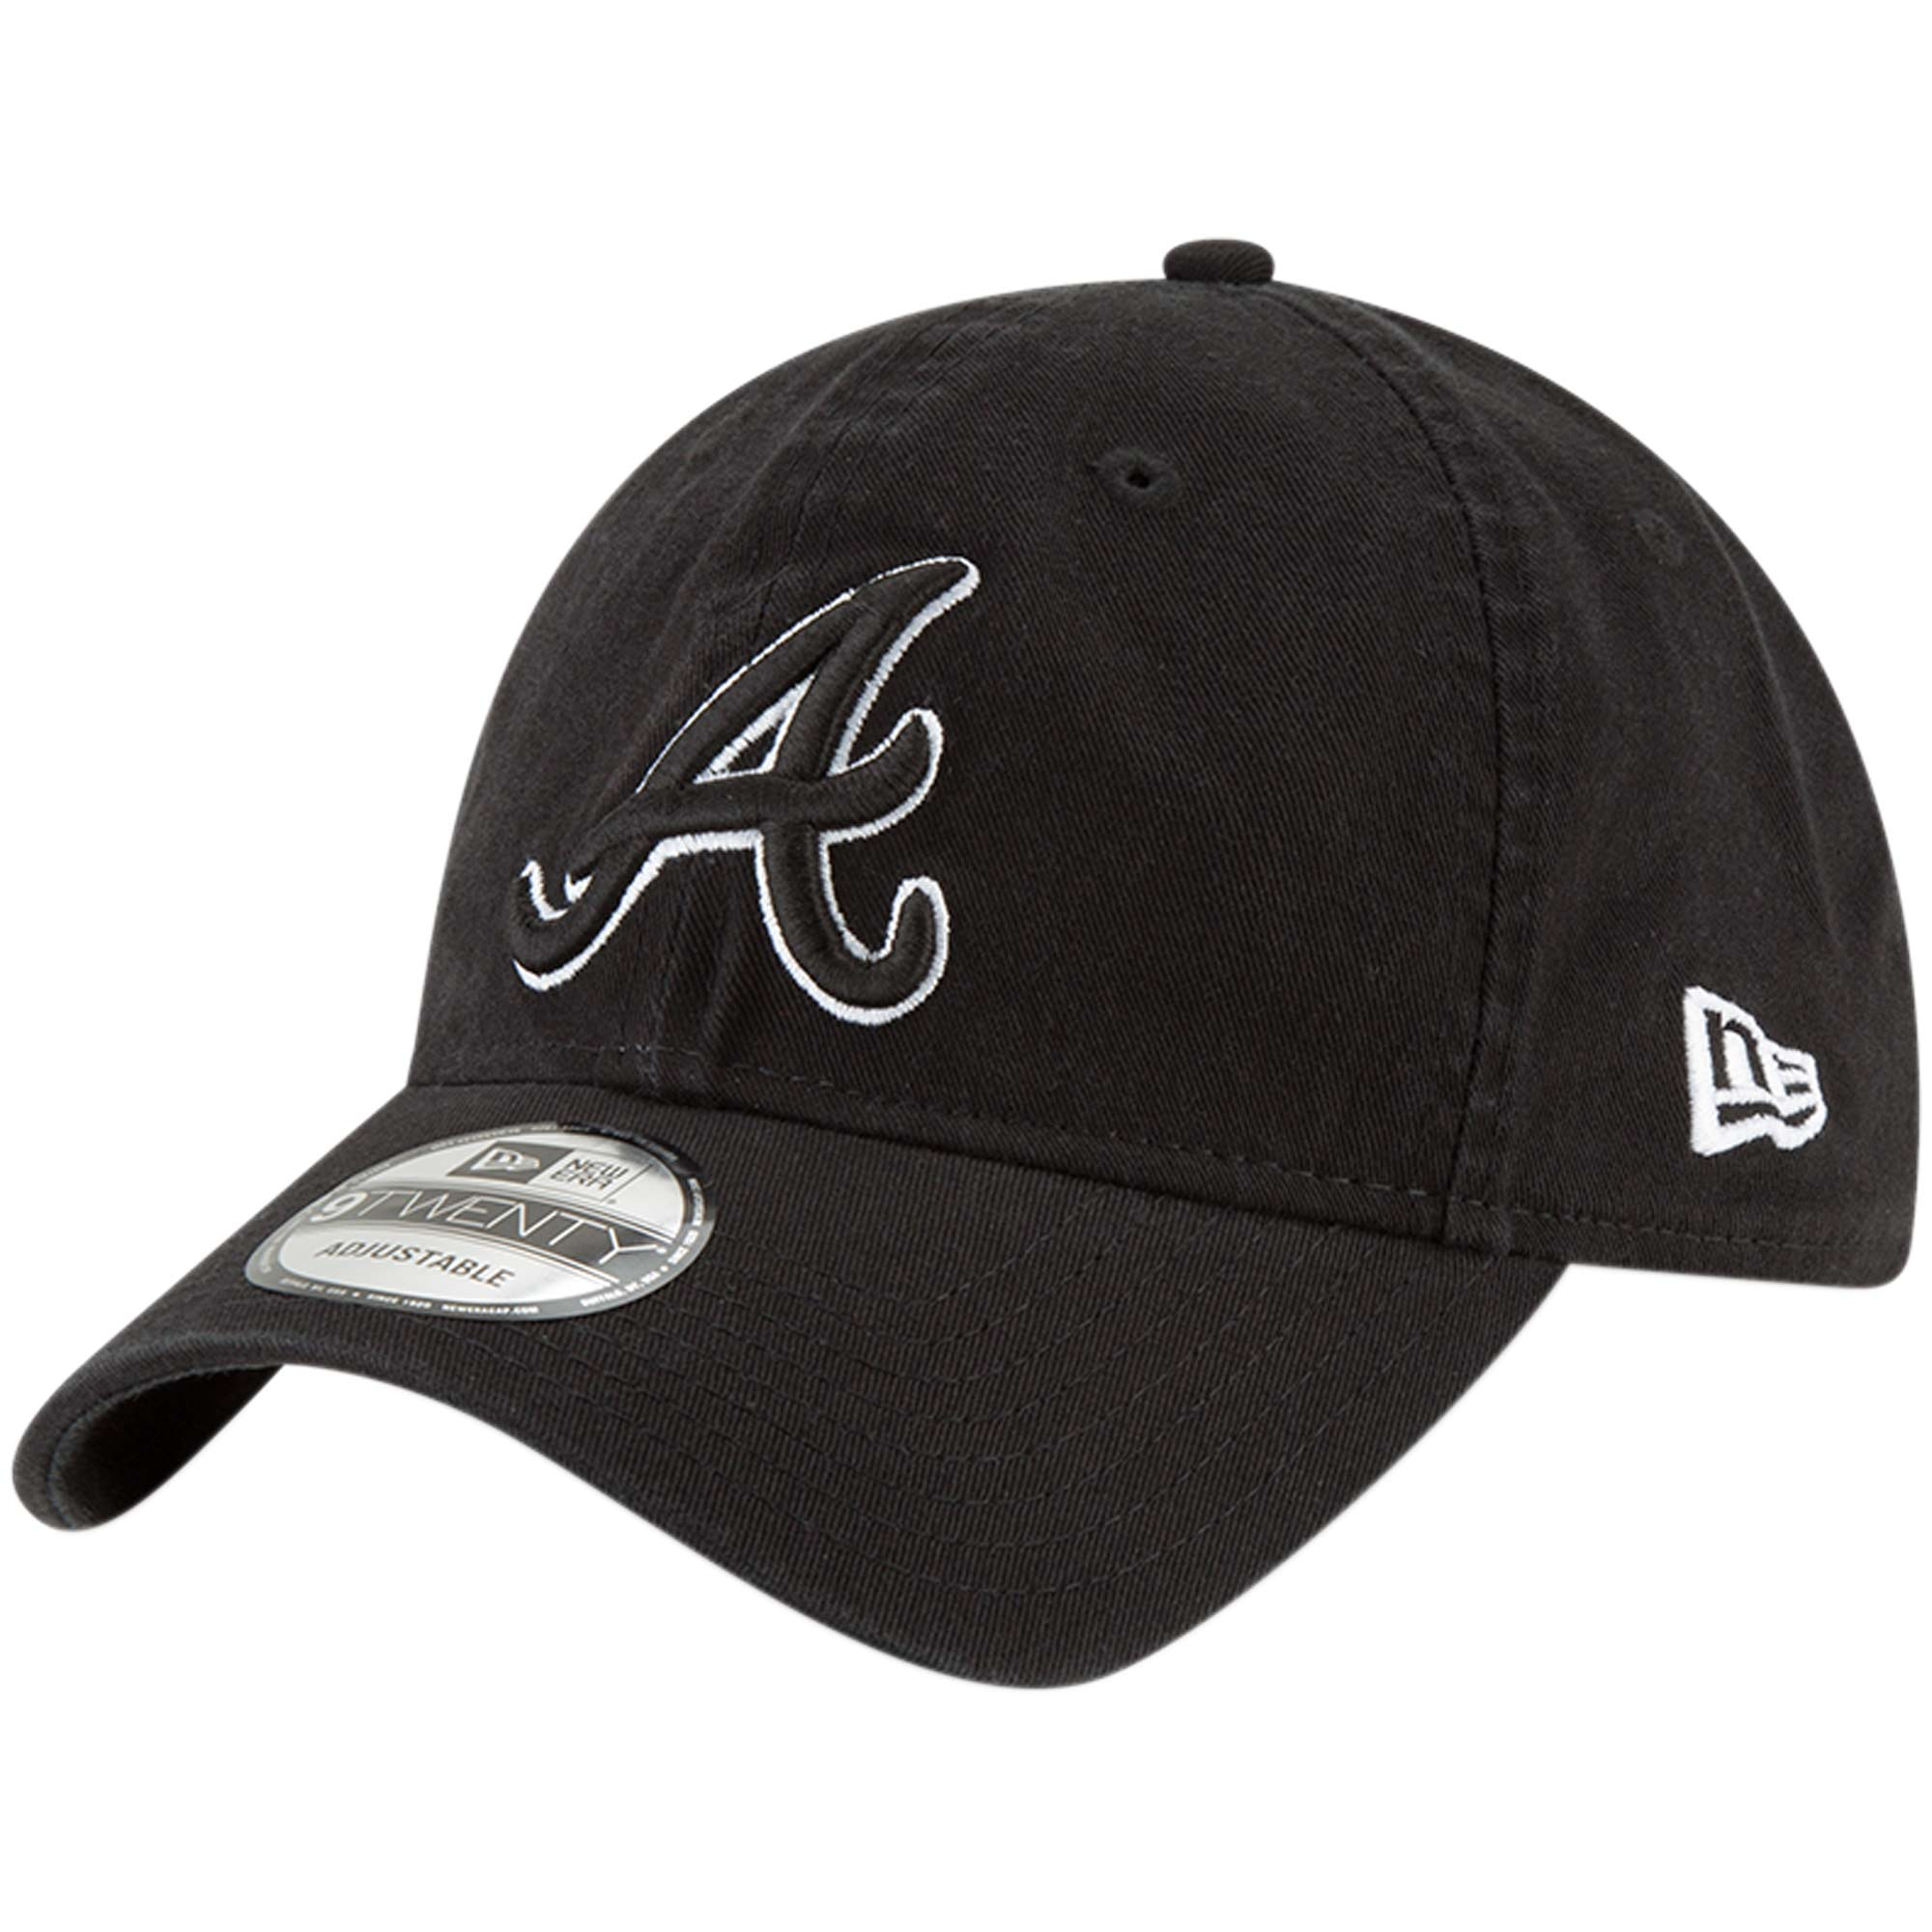 Atlanta Braves New Era Core Classic Twill 9TWENTY Adjustable Hat - Black - OSFA